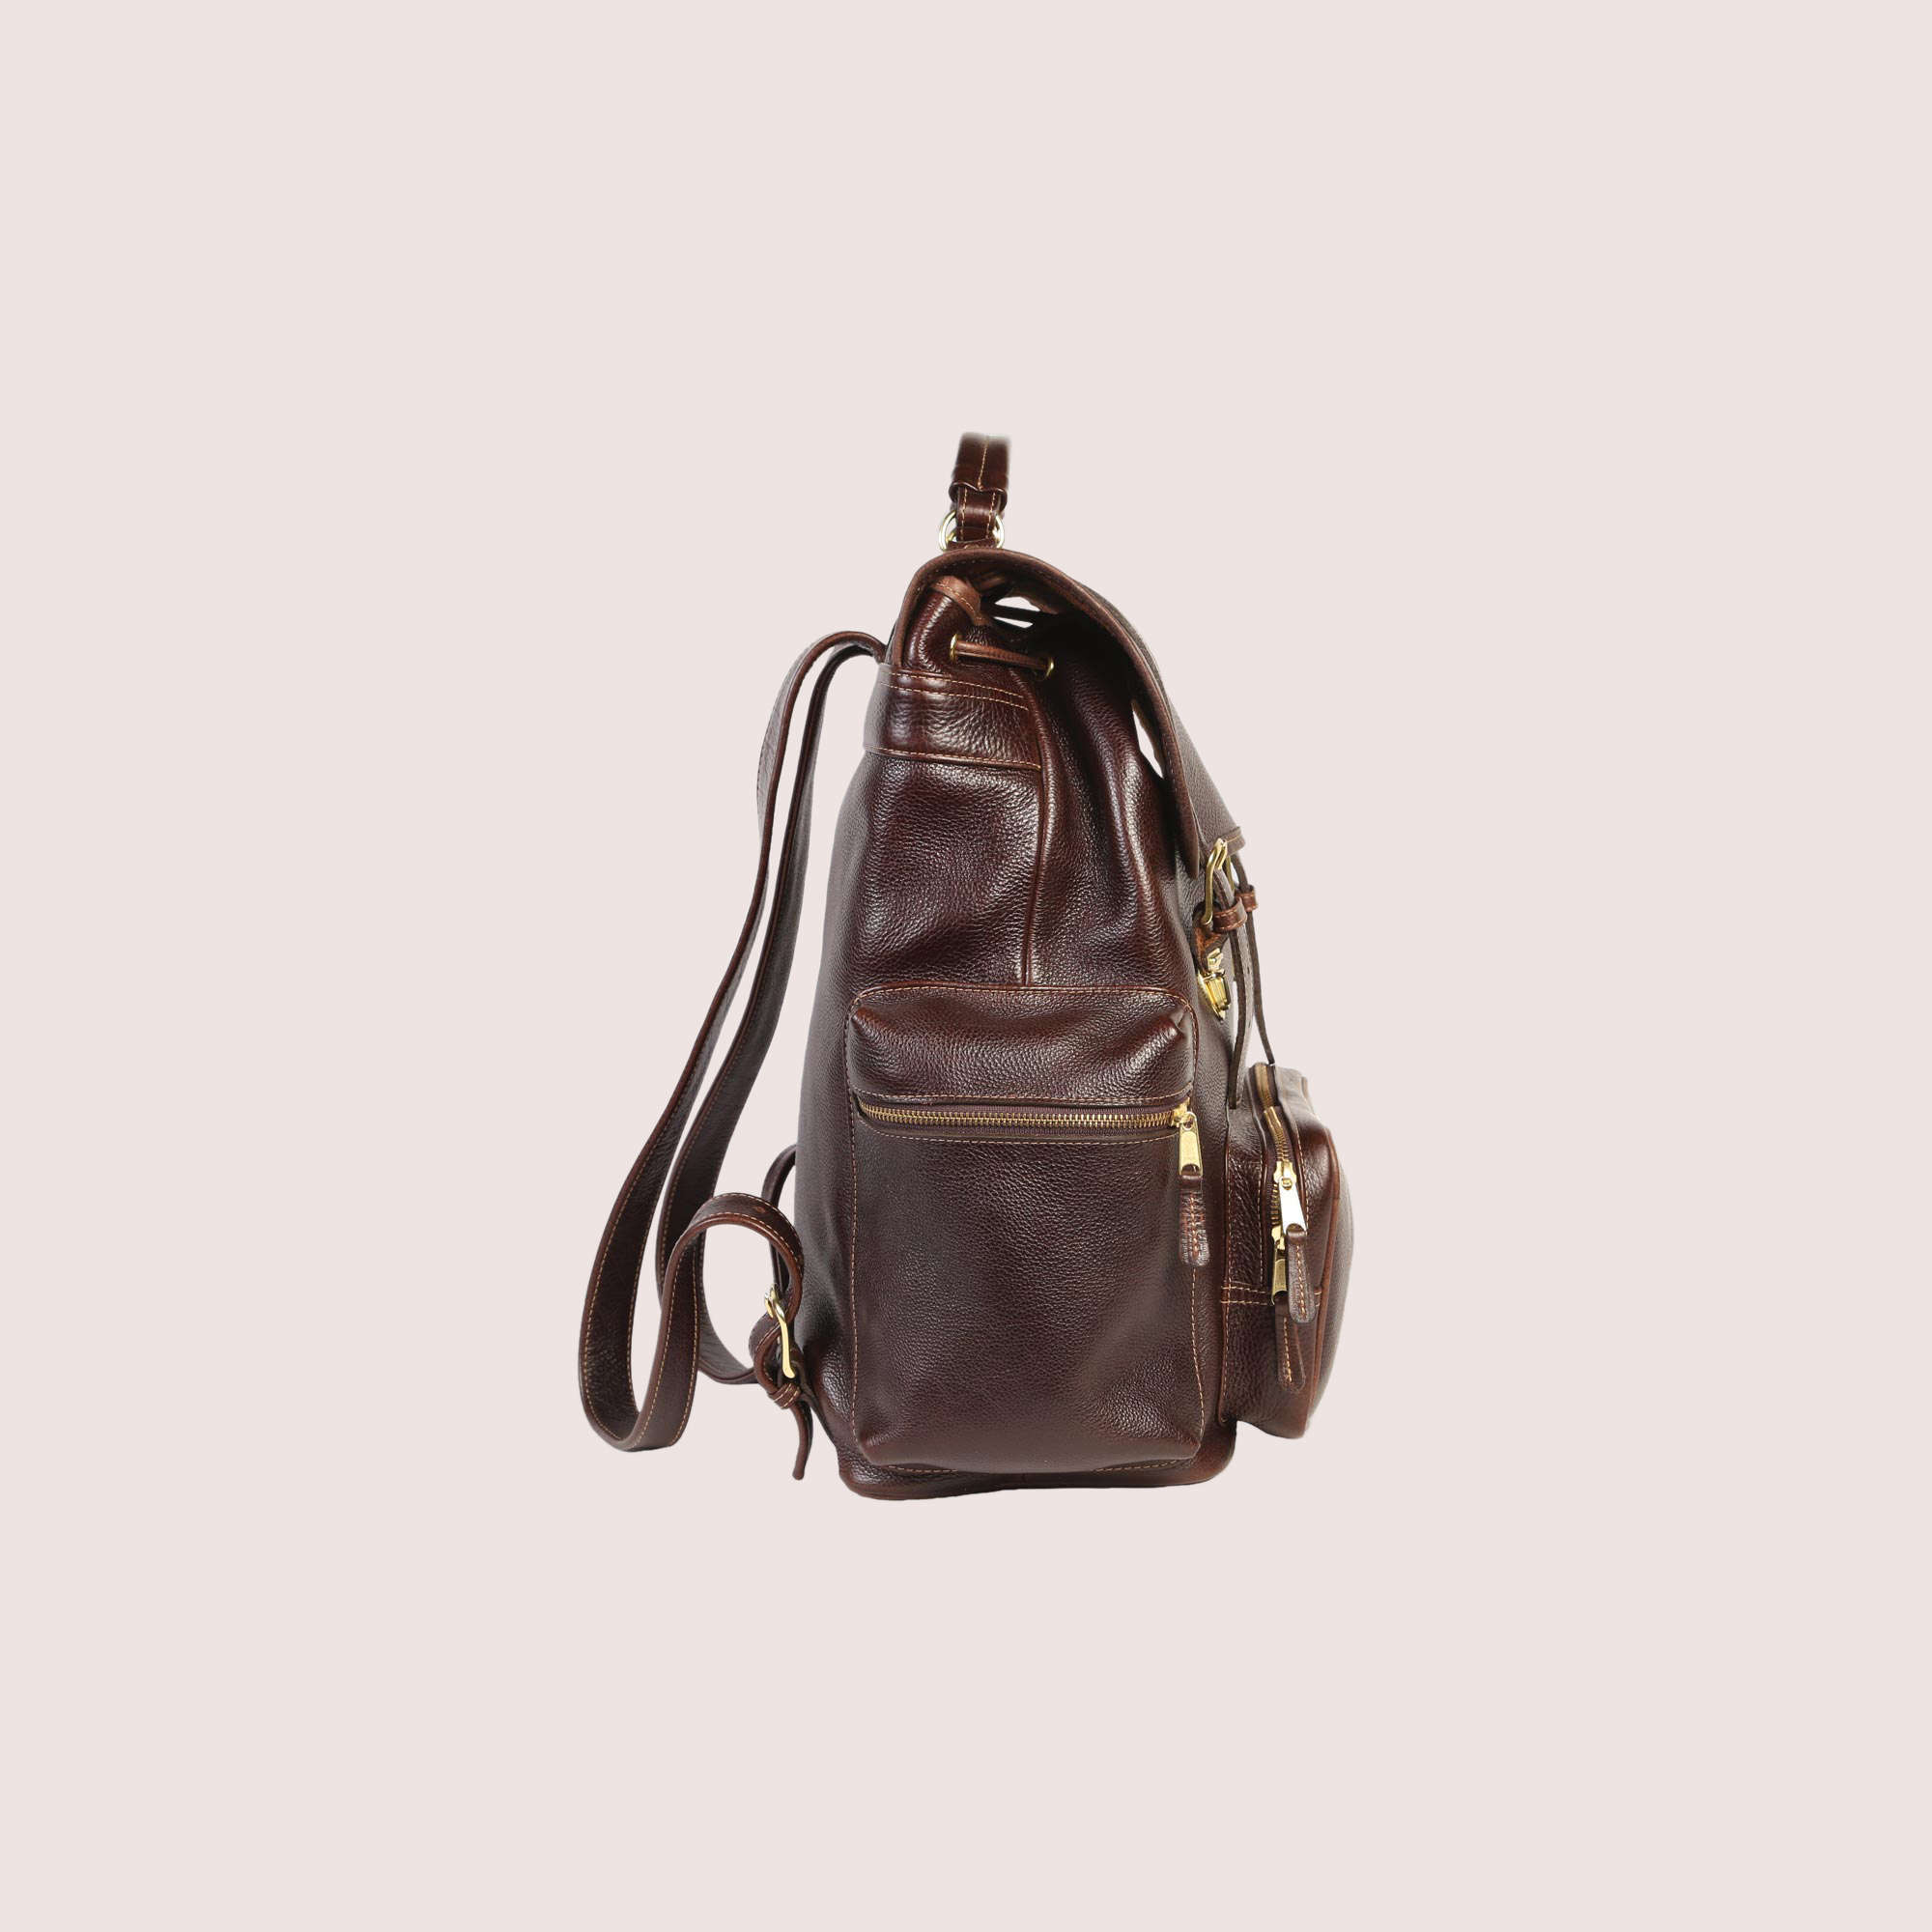 Hollister Travel Backpack